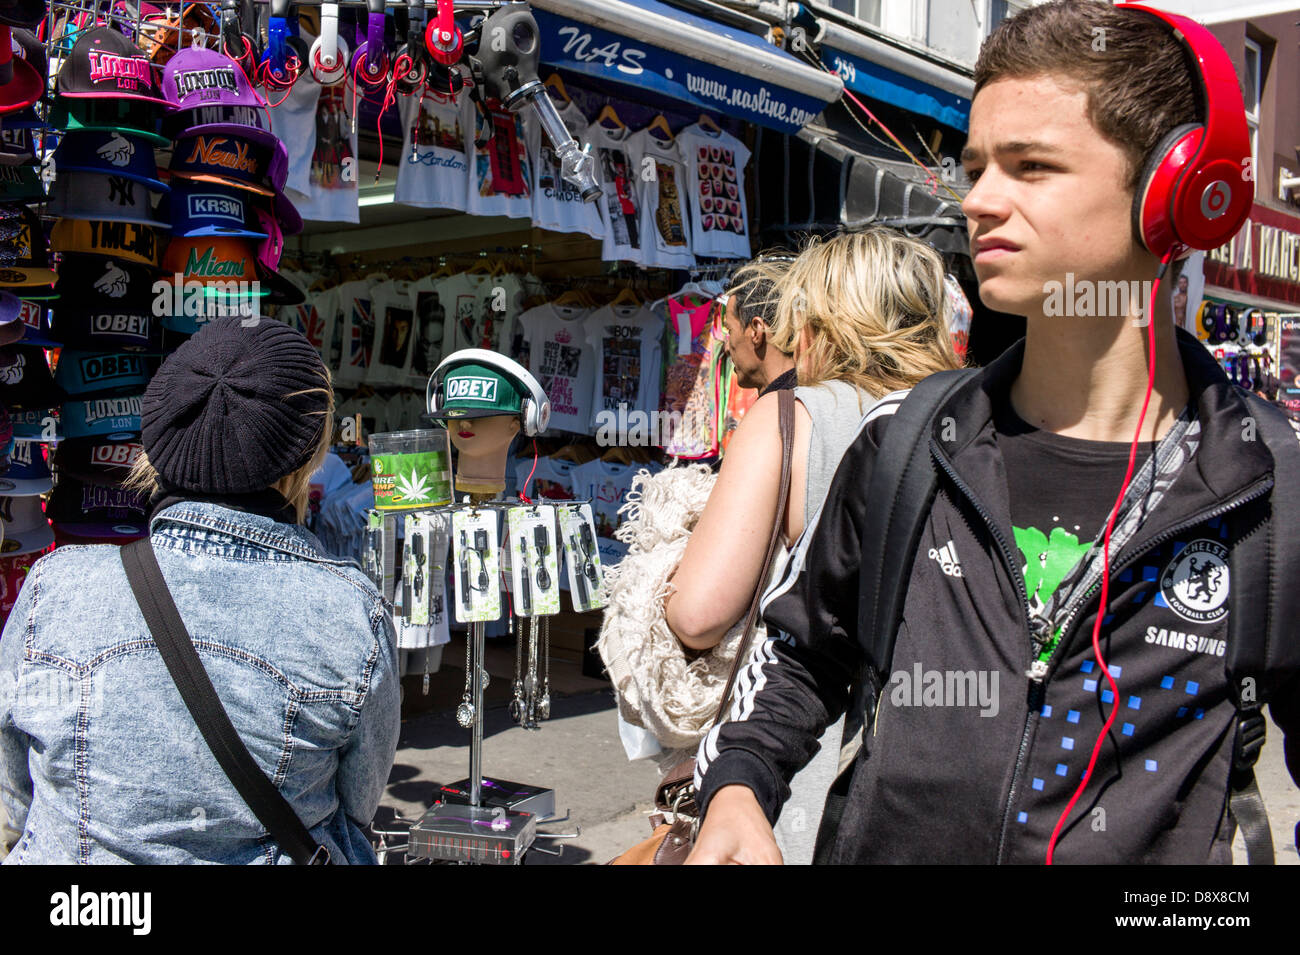 London UK, Camden Town, Camden Market, young boy, man, wearing headphones, and tourist, shoppers, looking at a market - Stock Image